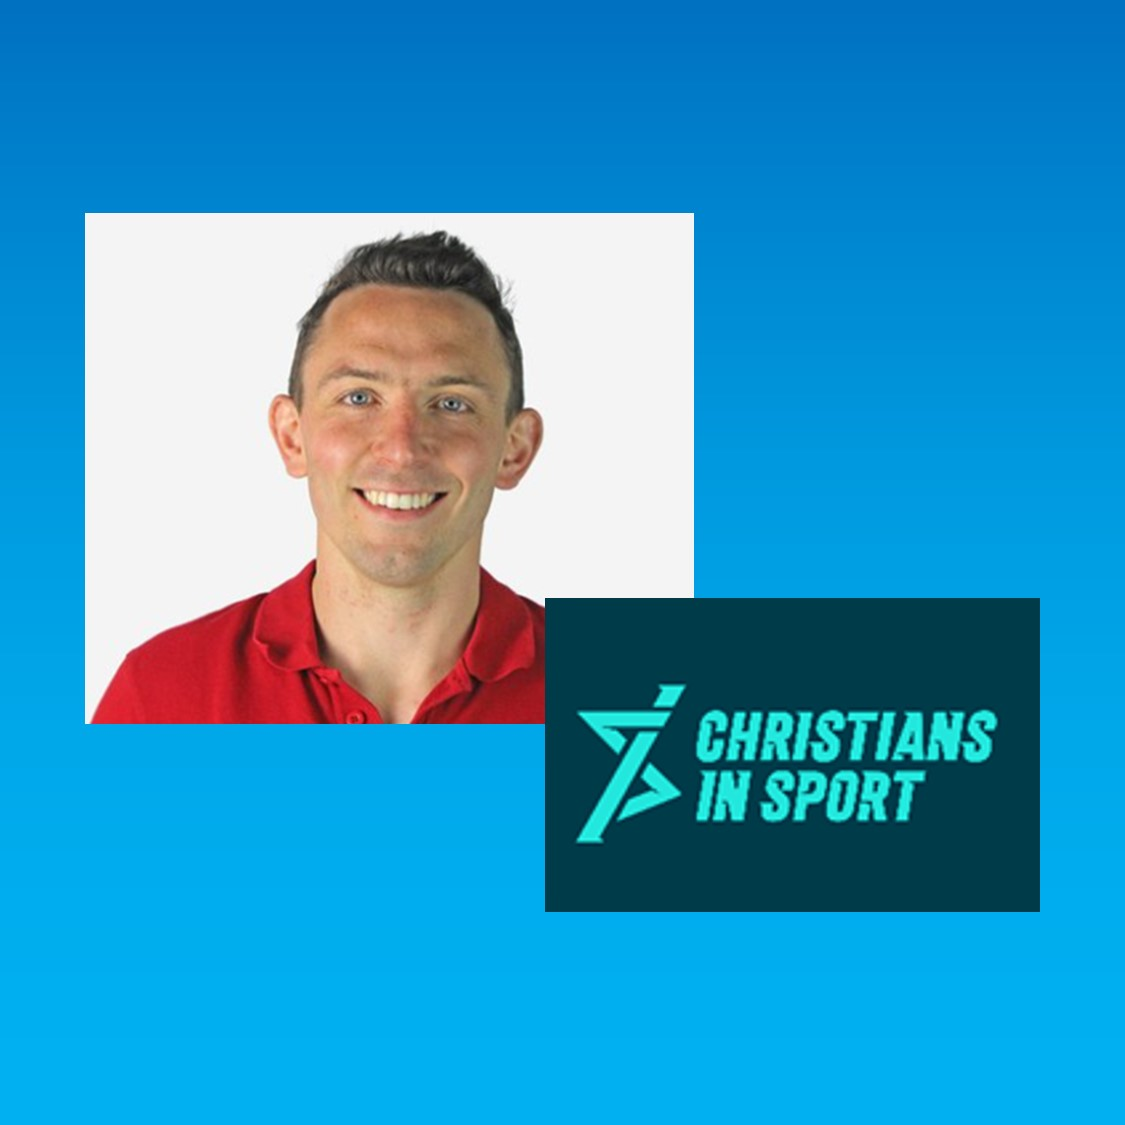 Christians in sport web 2019